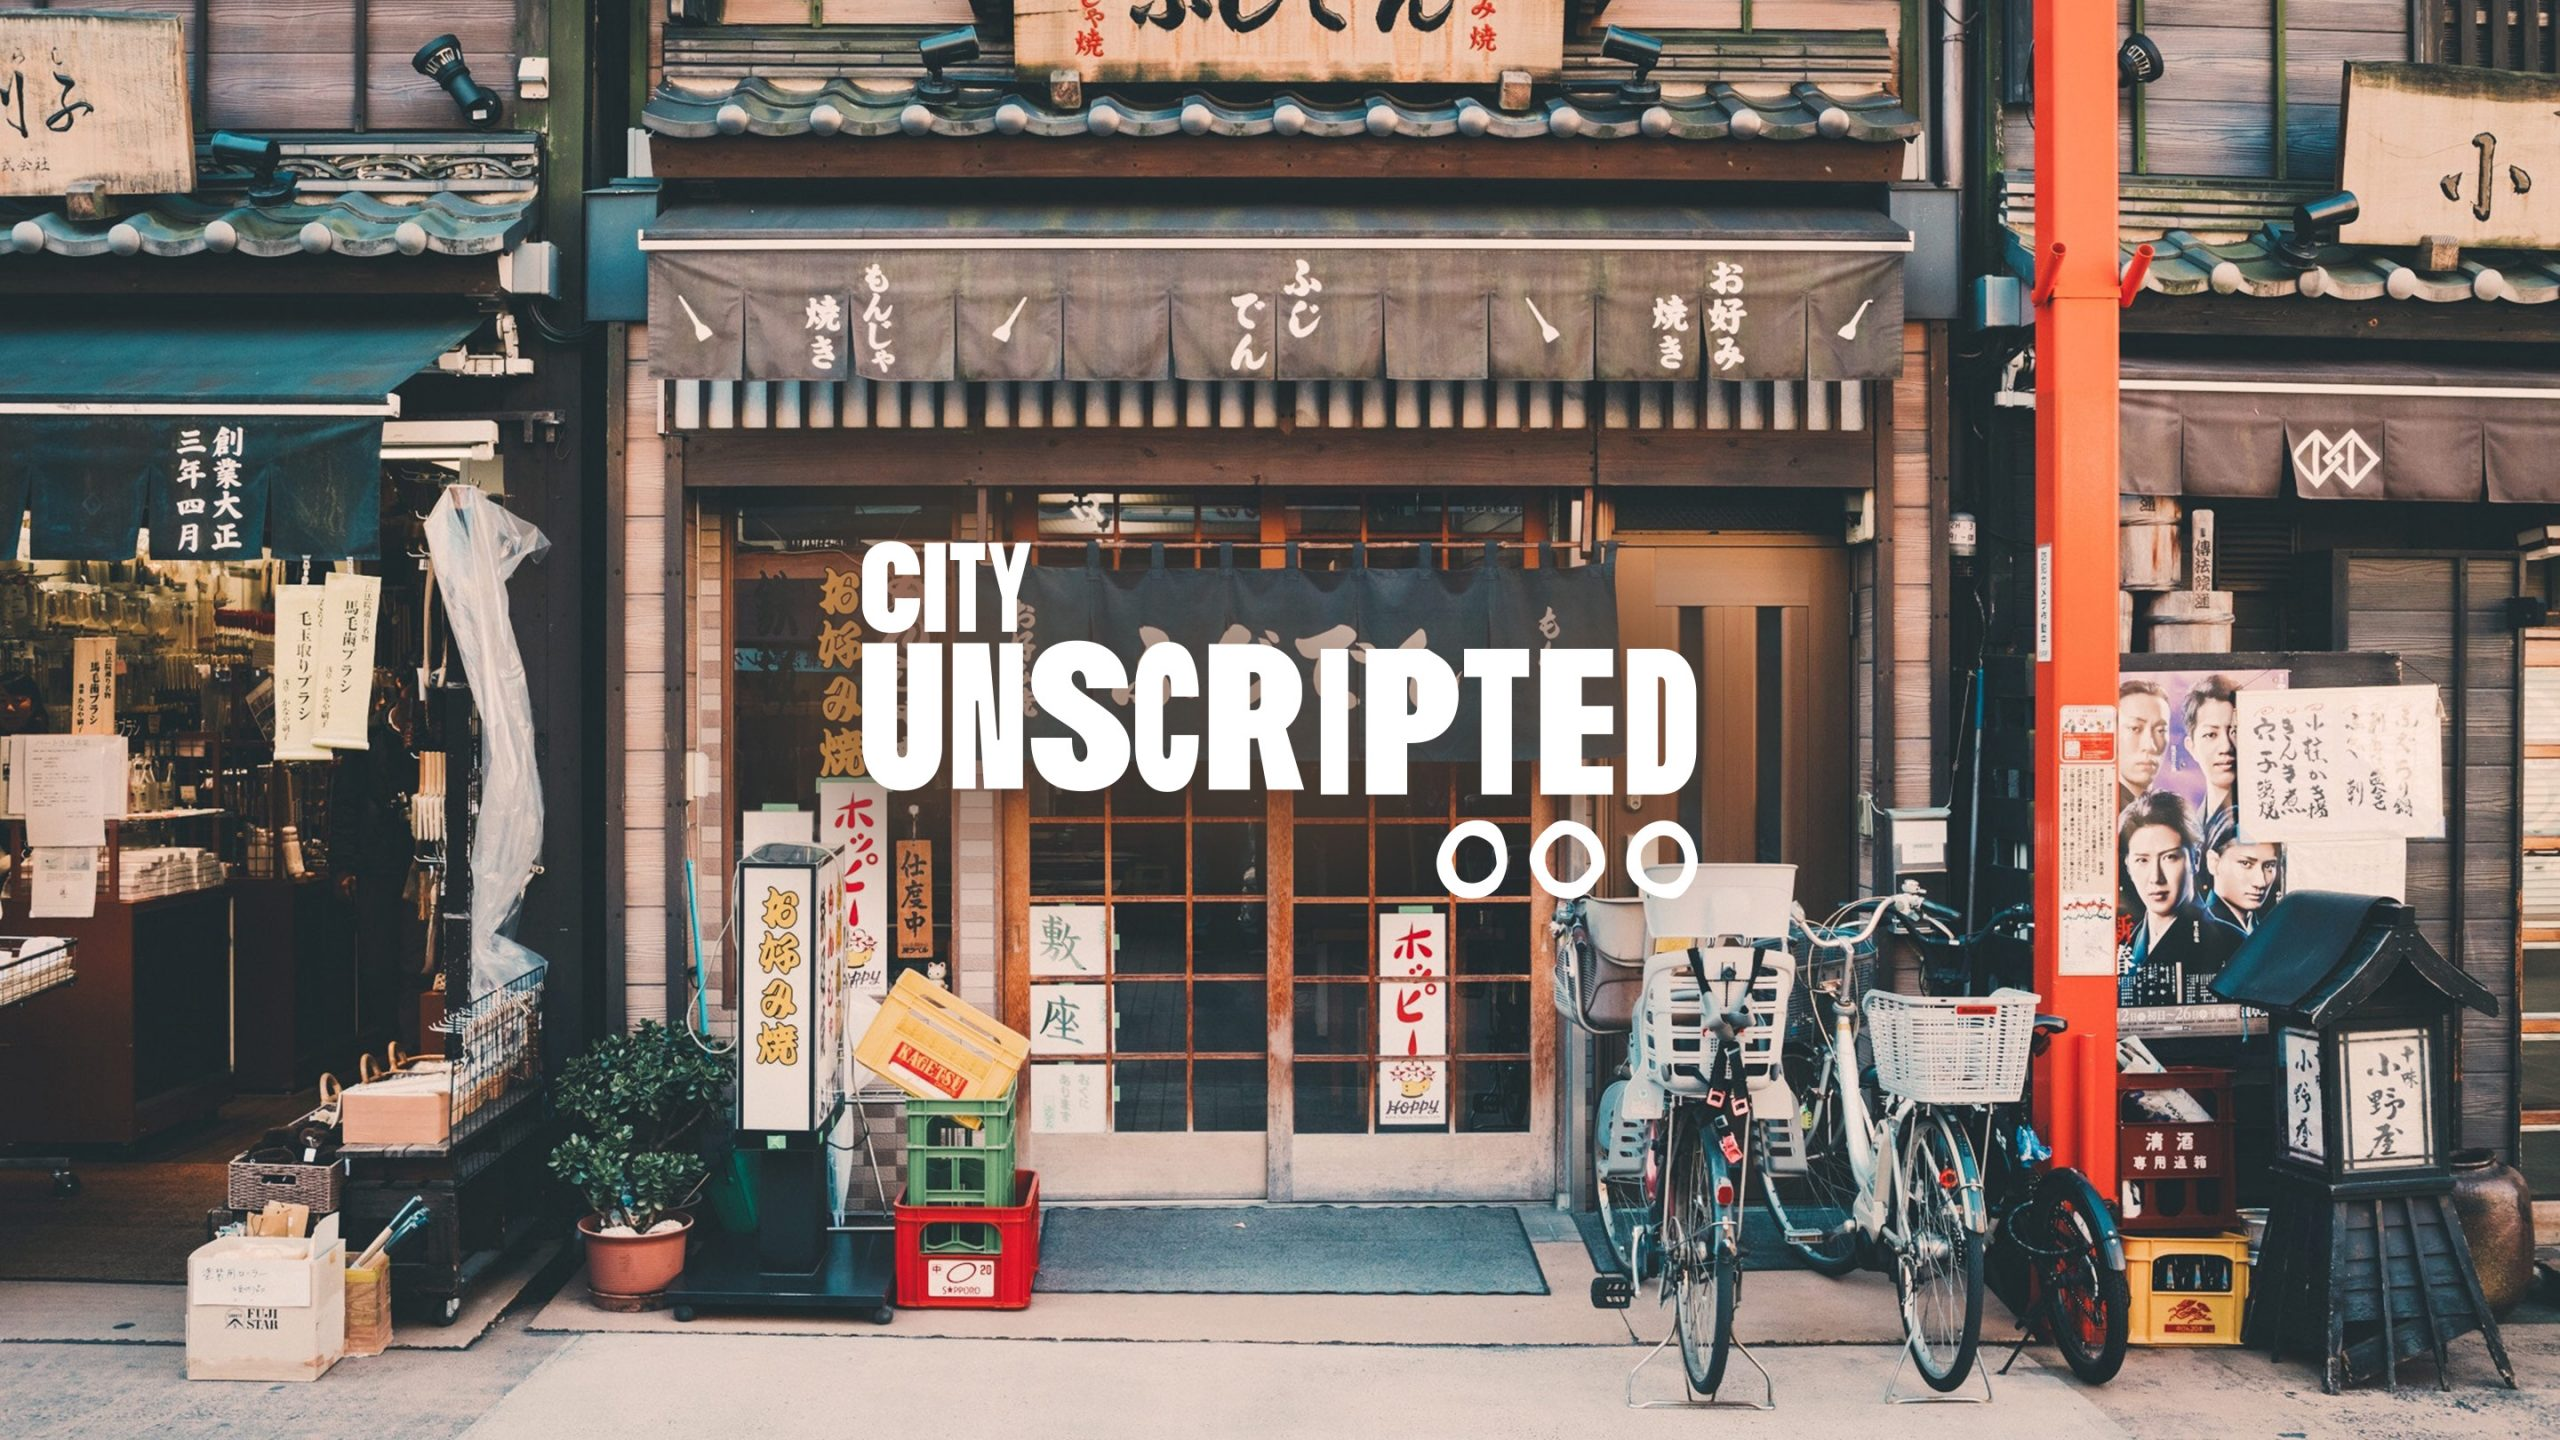 City-Unscripted